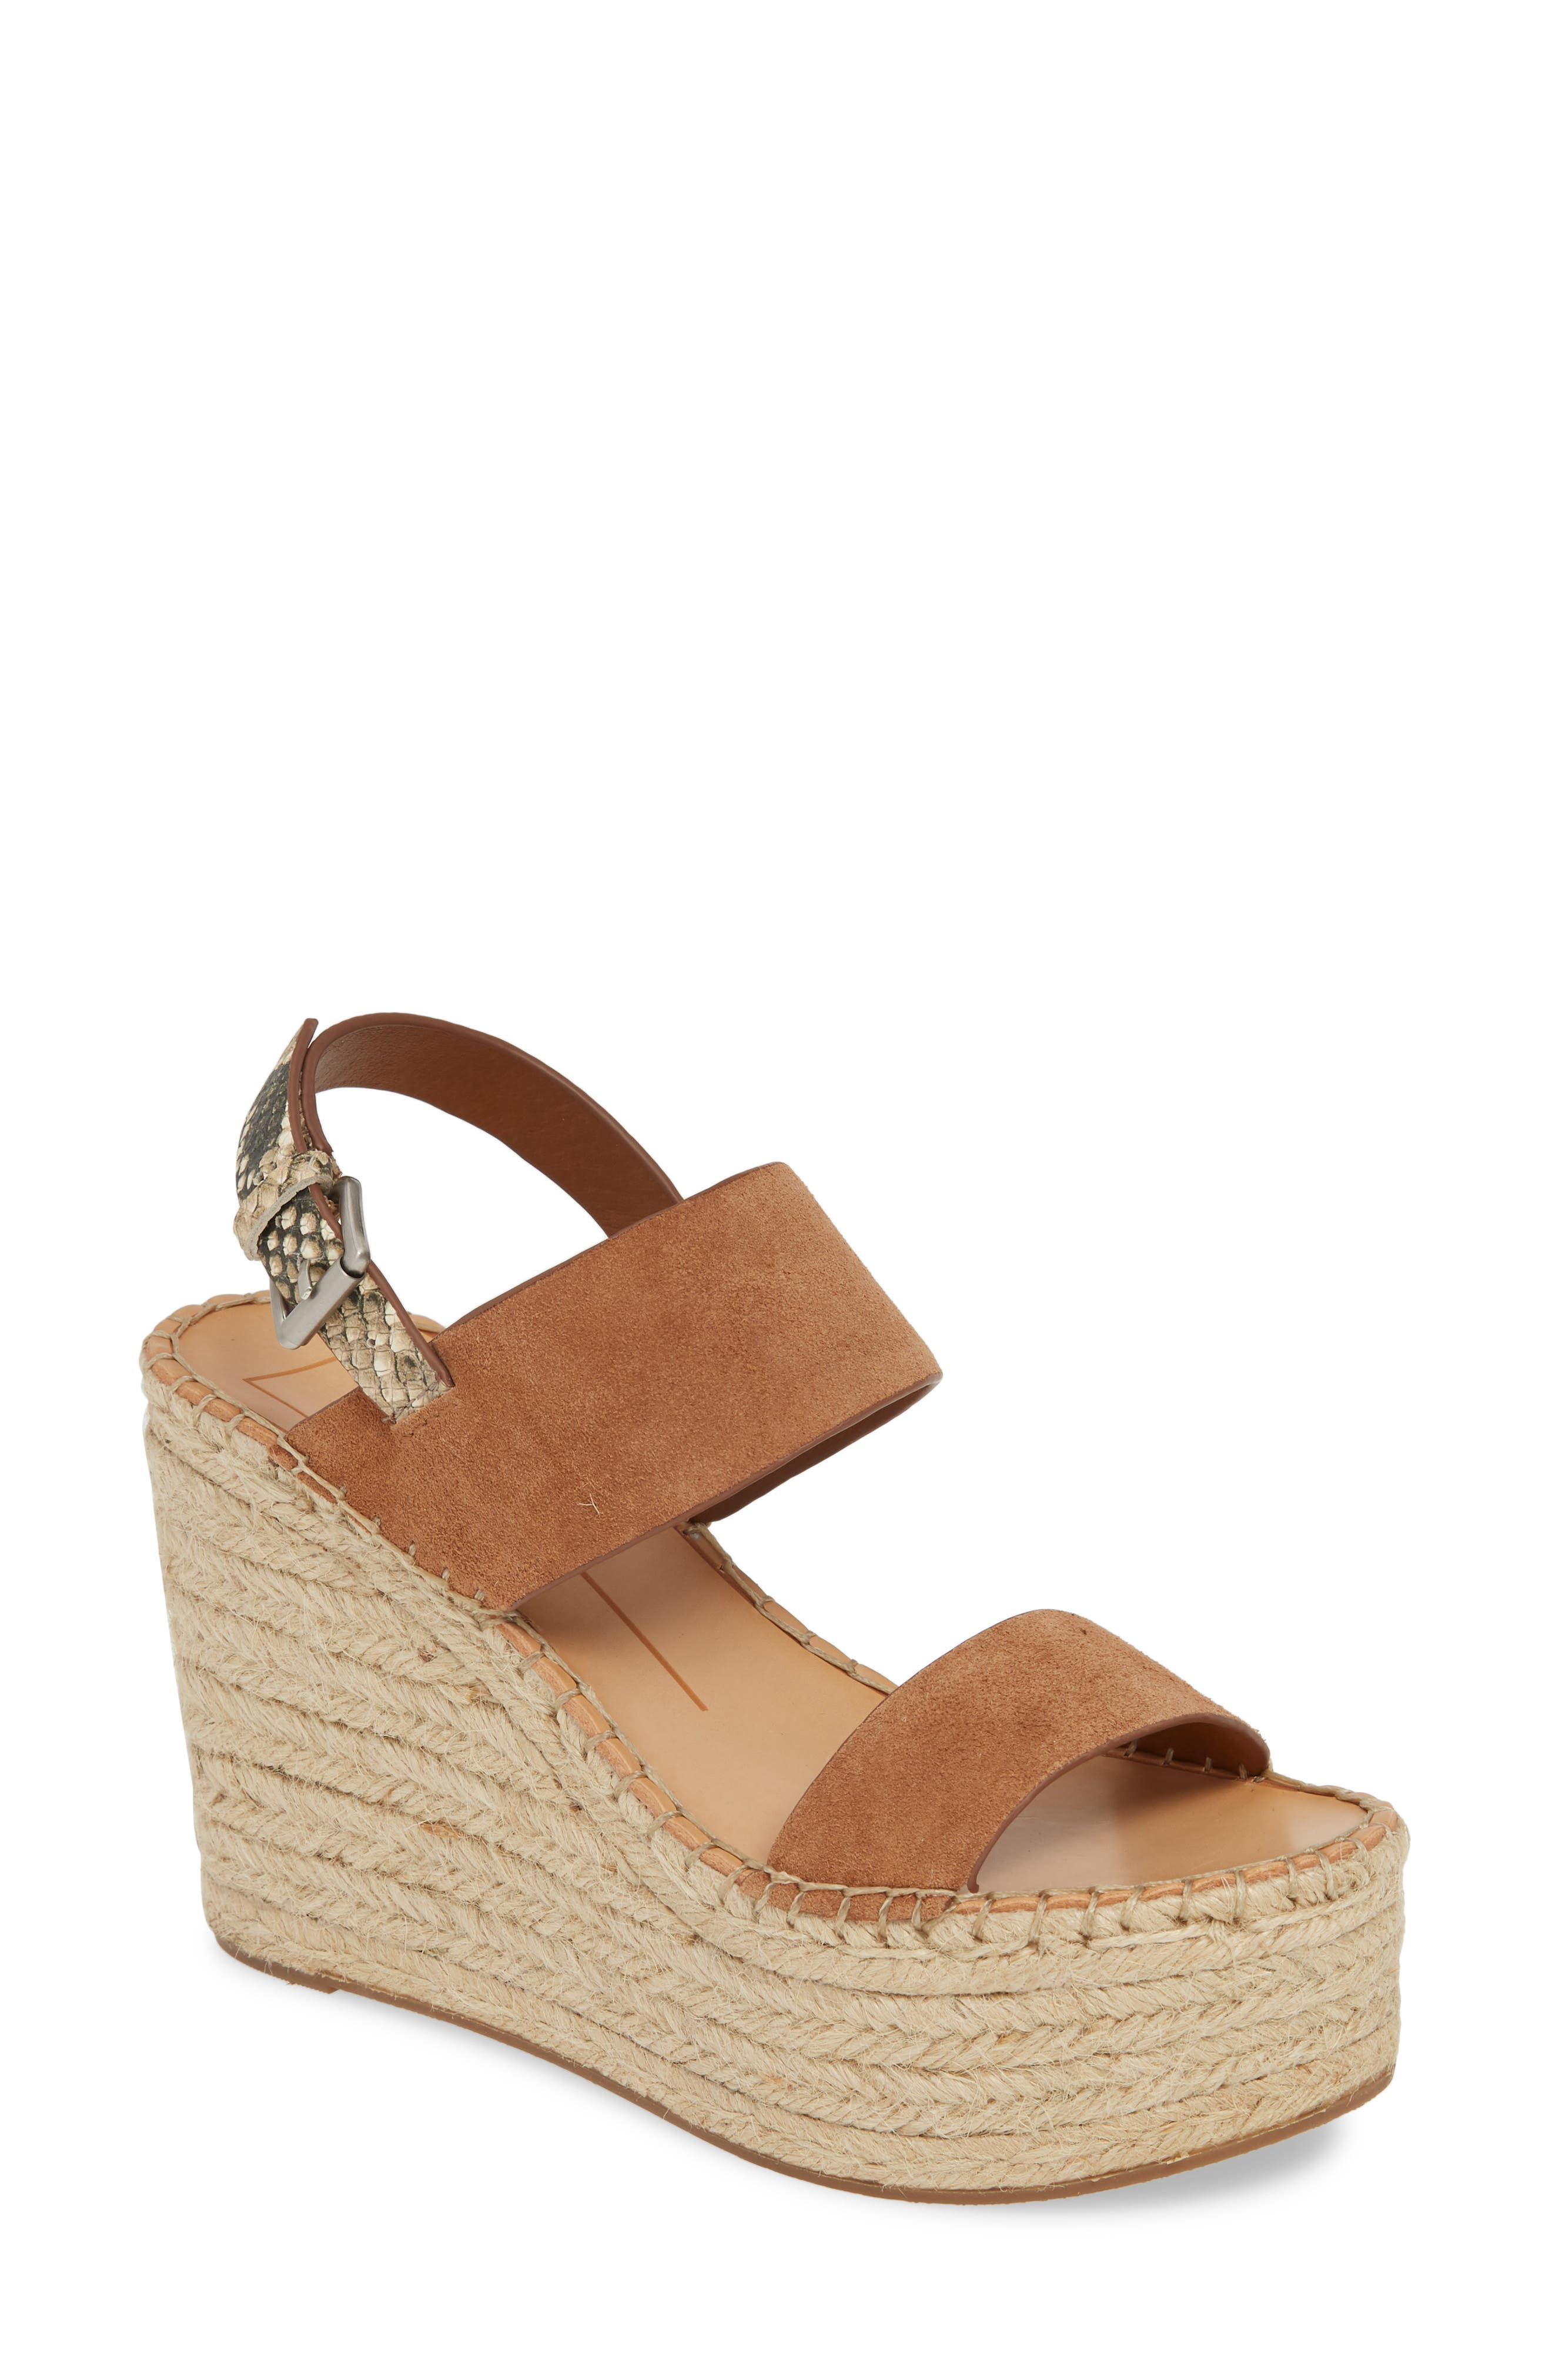 DOLCE VITA, Spiro Platform Wedge Sandal, Main thumbnail 1, color, BROWN SUEDE